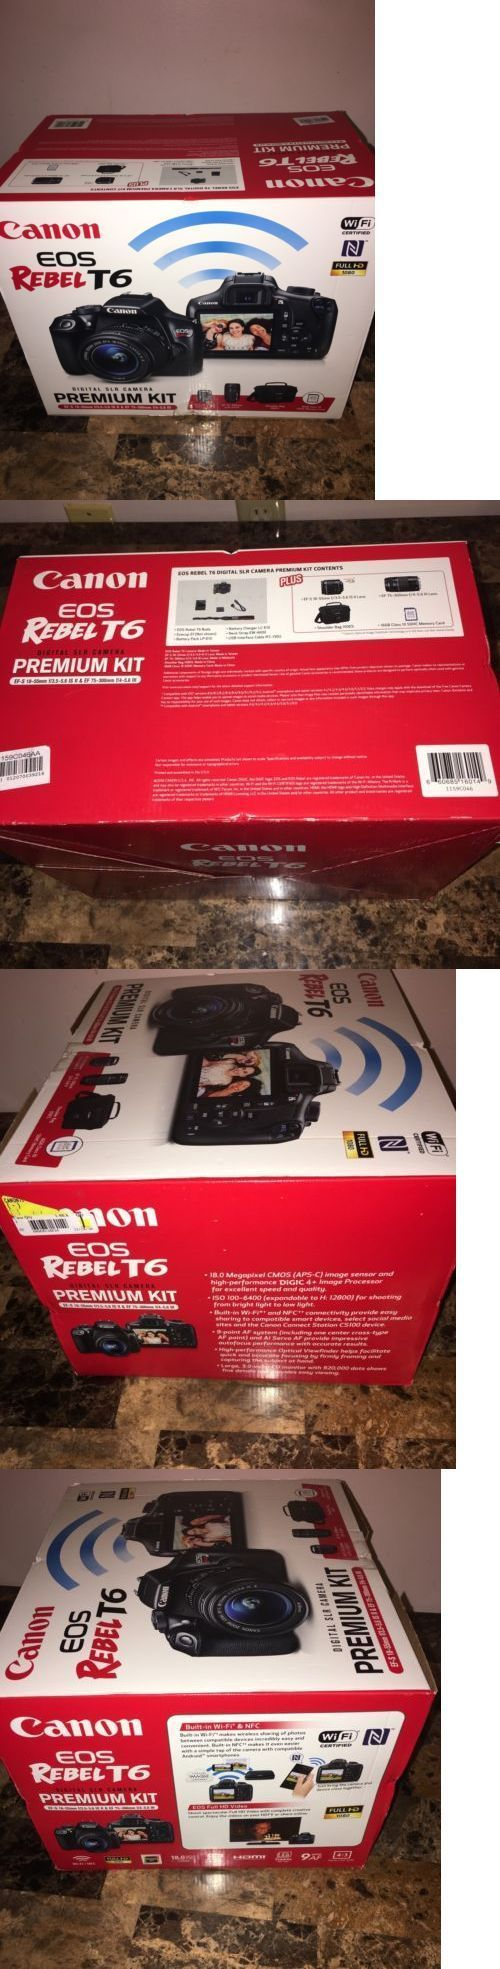 Camera Photo: Brand New Canon Rebel T6 Dslr Camera With 18-55,75-300Mm Lenses, Bag BUY IT NOW ONLY: $460.0